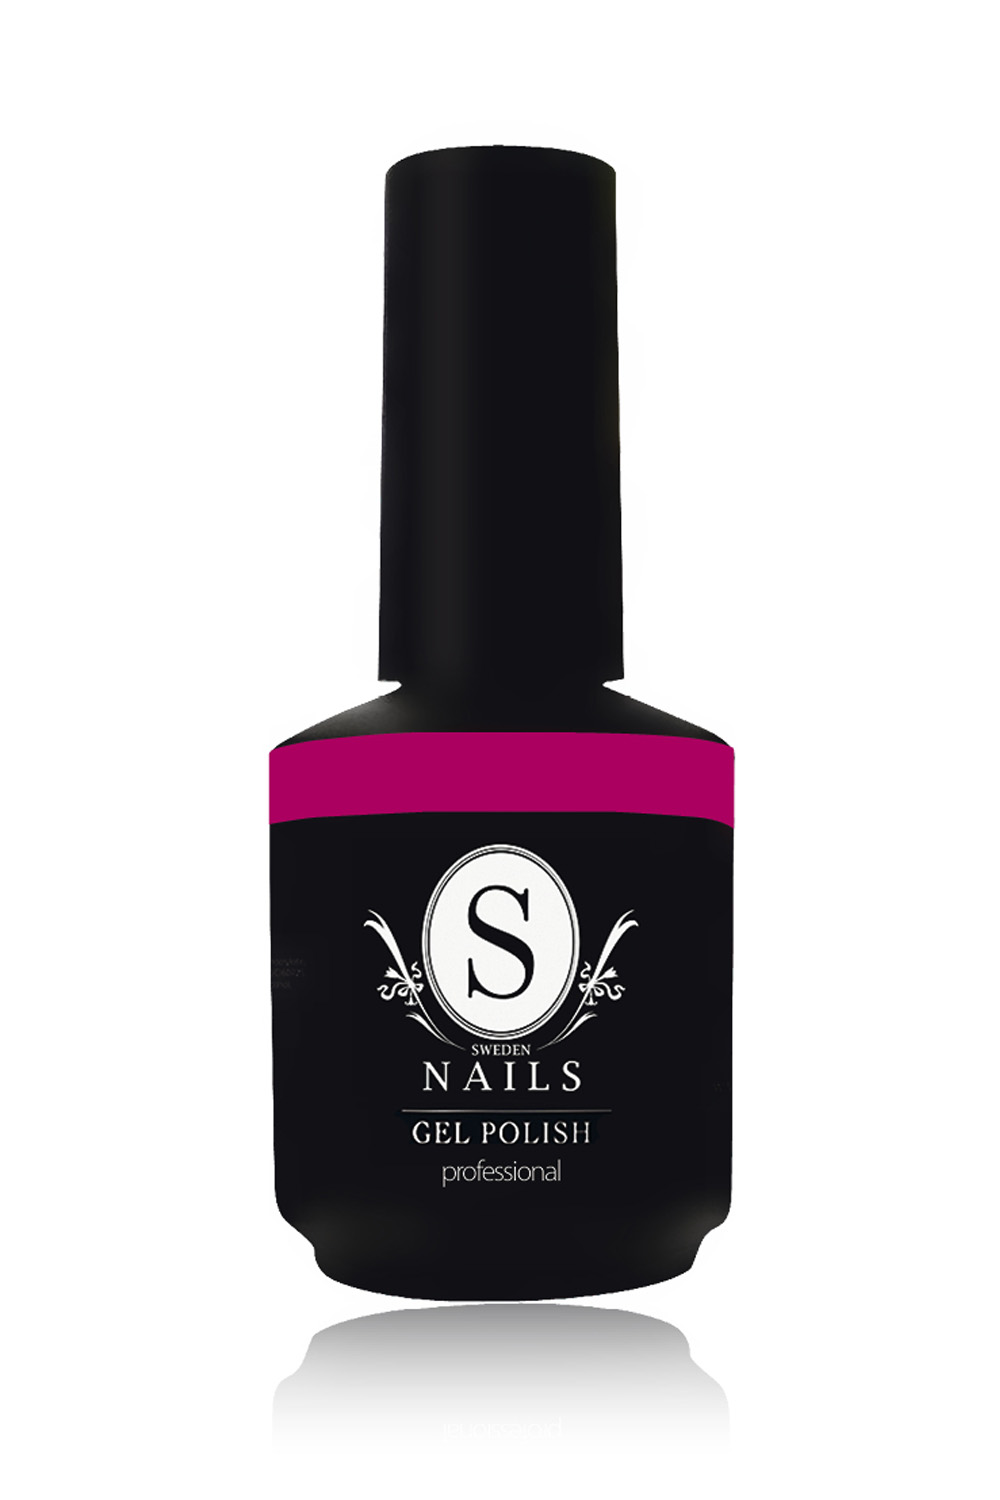 Foto Gelpolish Sweden Nails Starters Kit